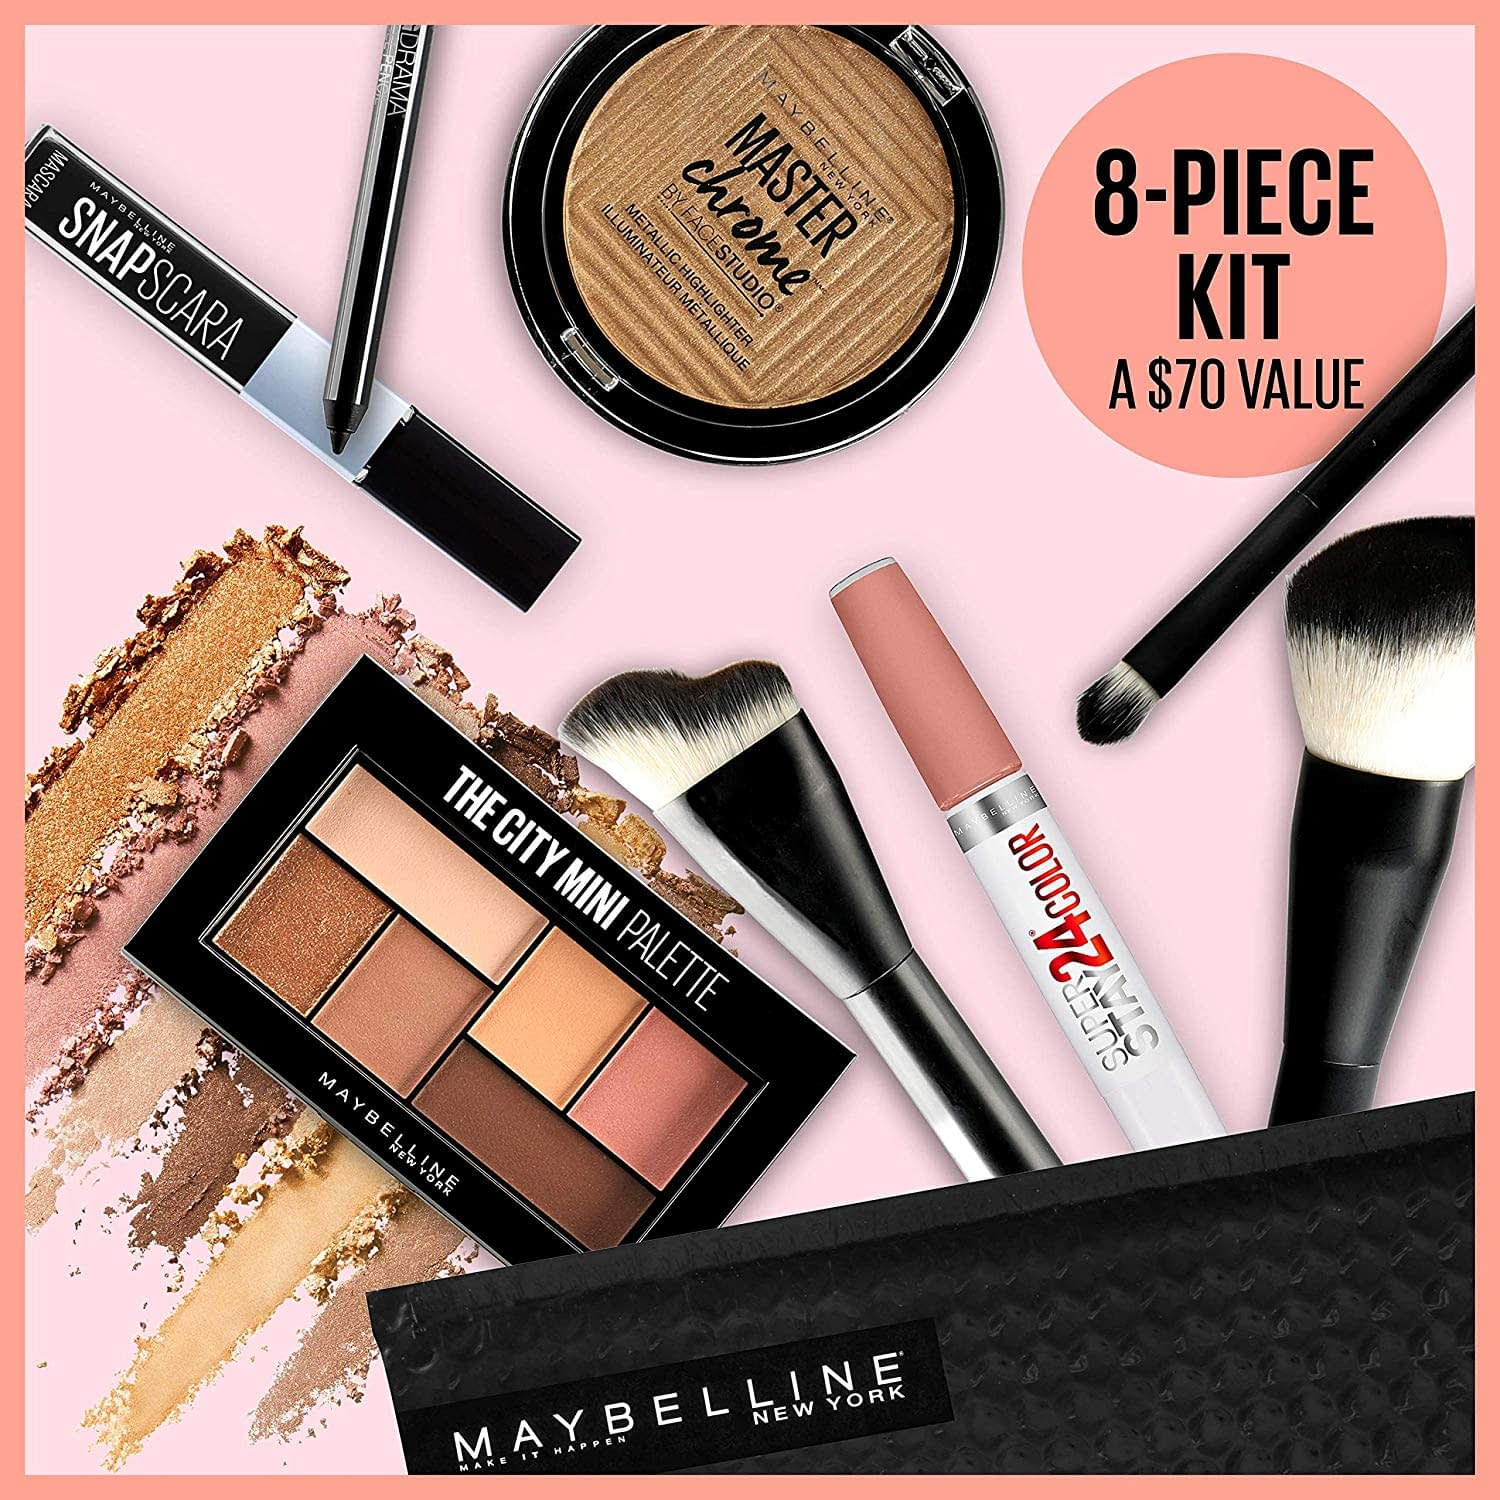 Maybelline Glow-Getter Makeup Kit - Christmas Makeup Set Collection